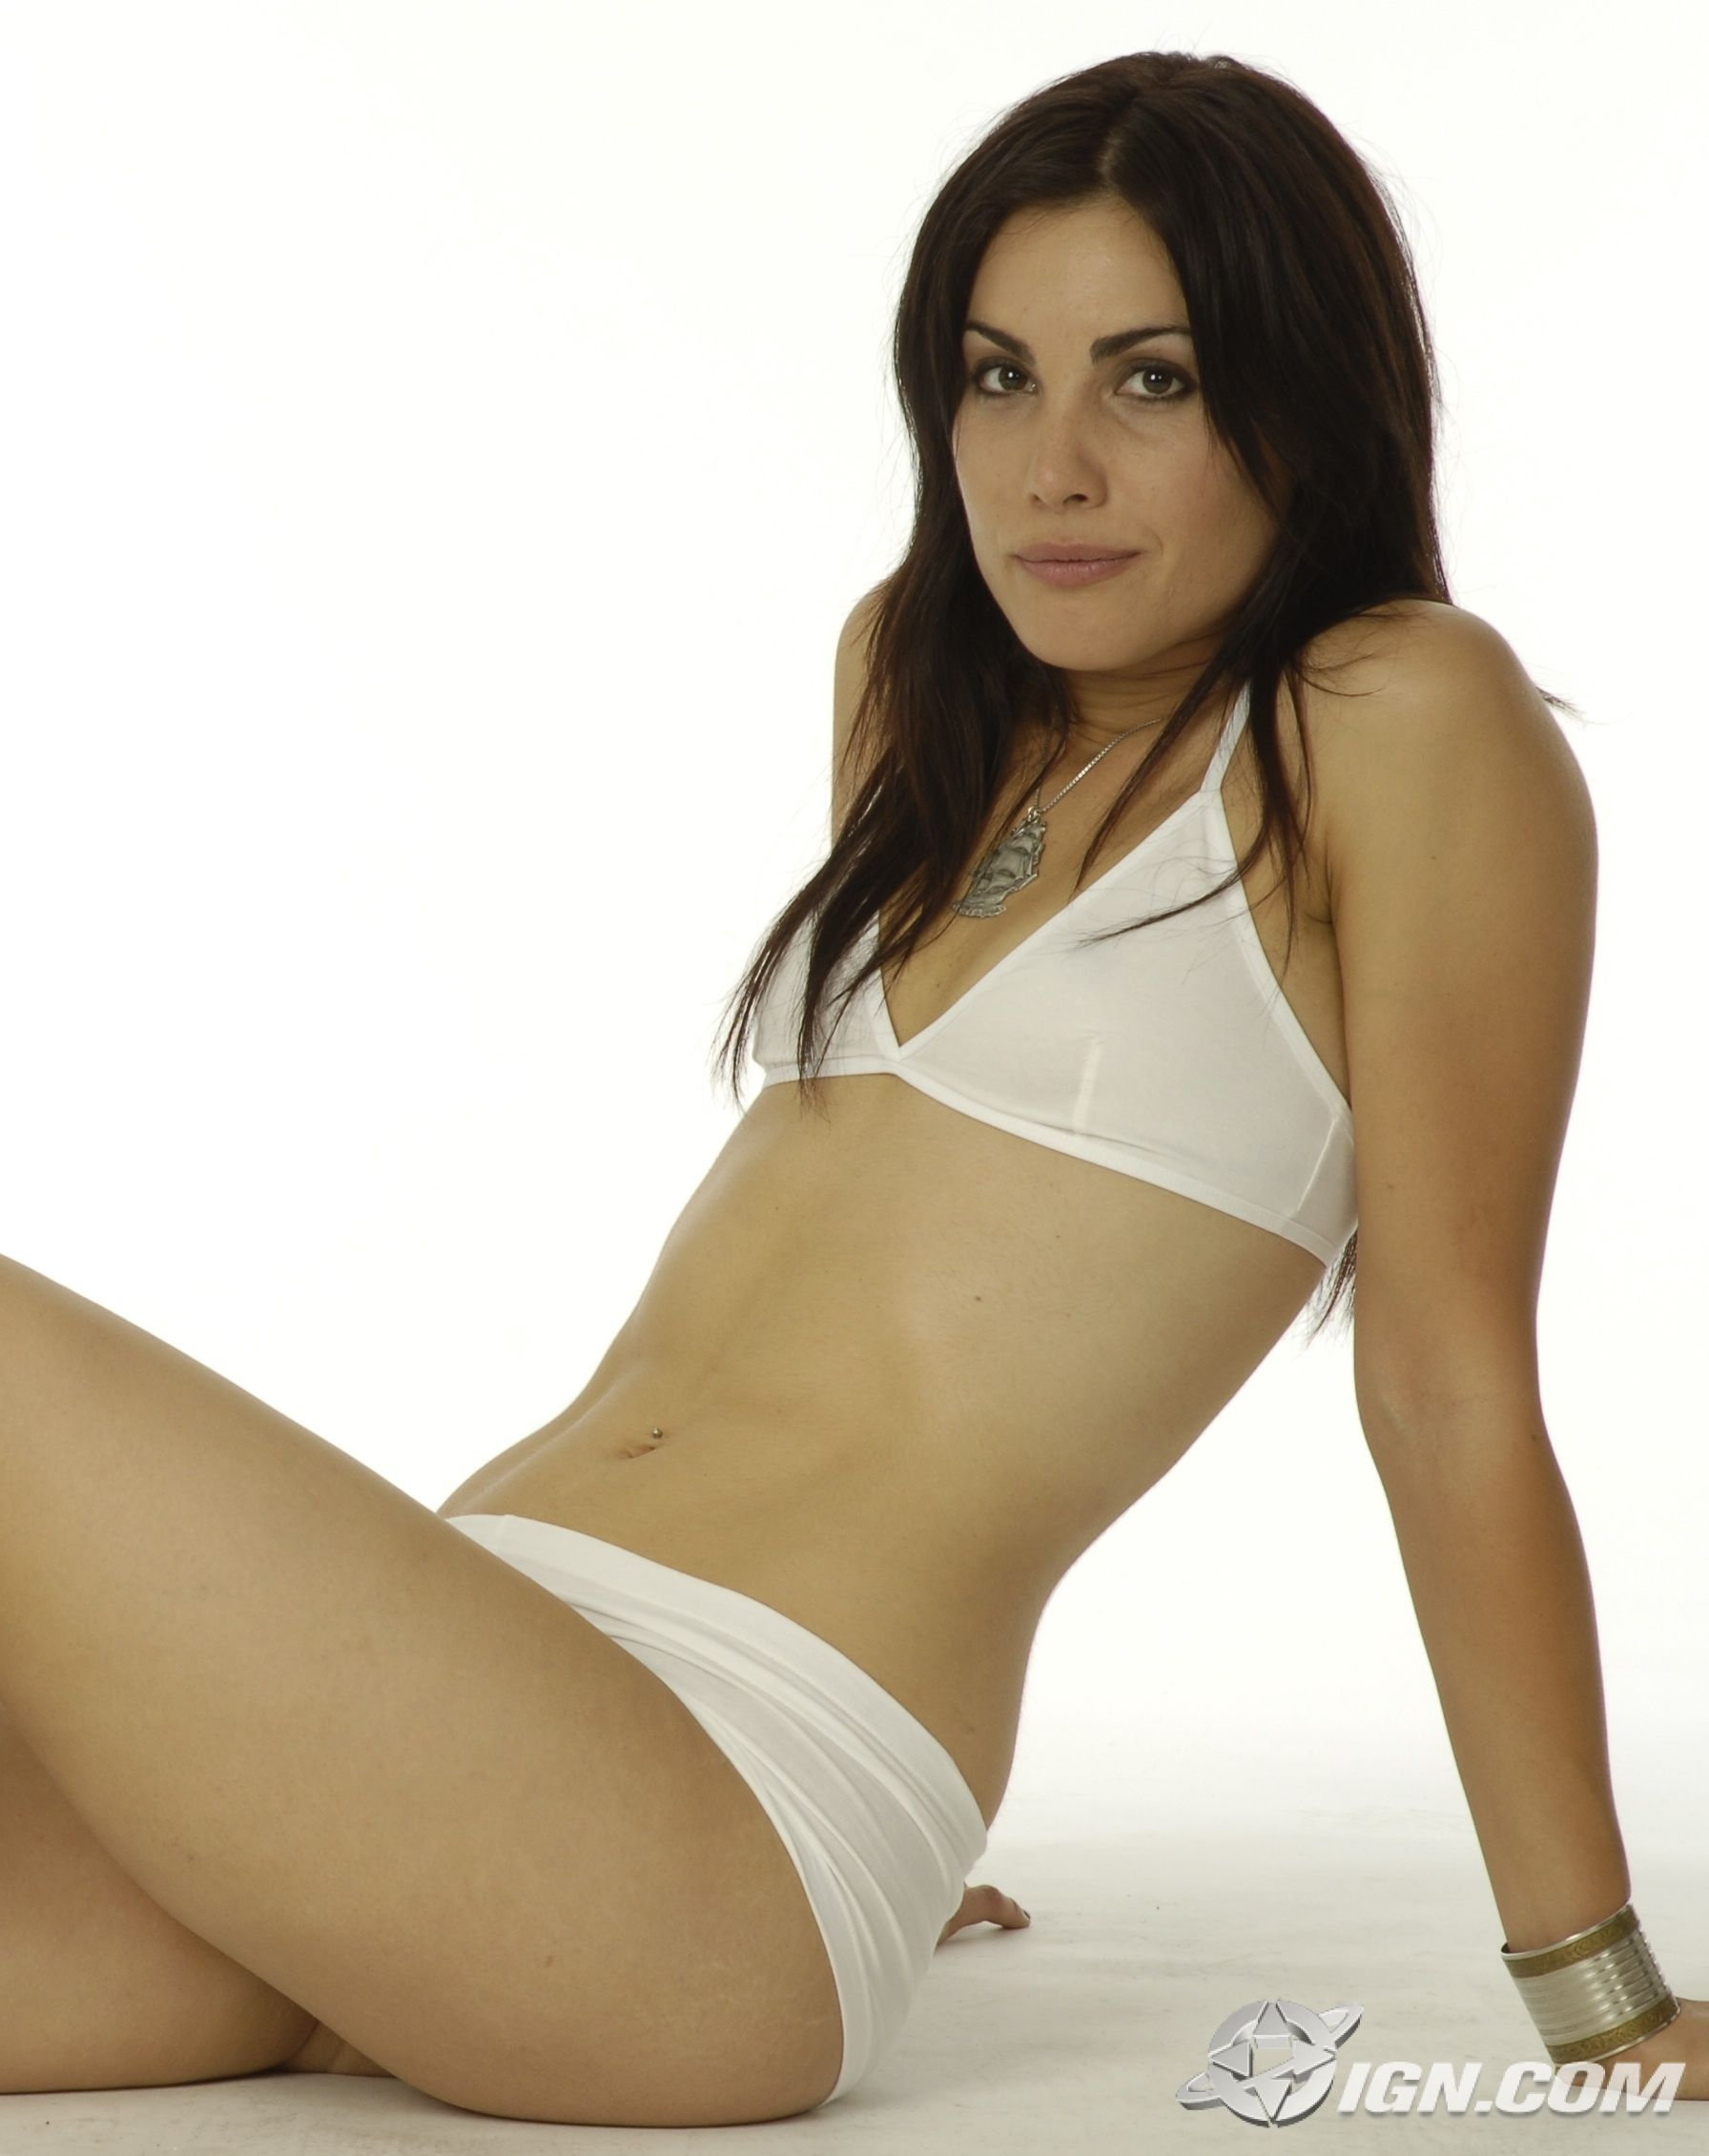 Sorry, carly pope nude are not